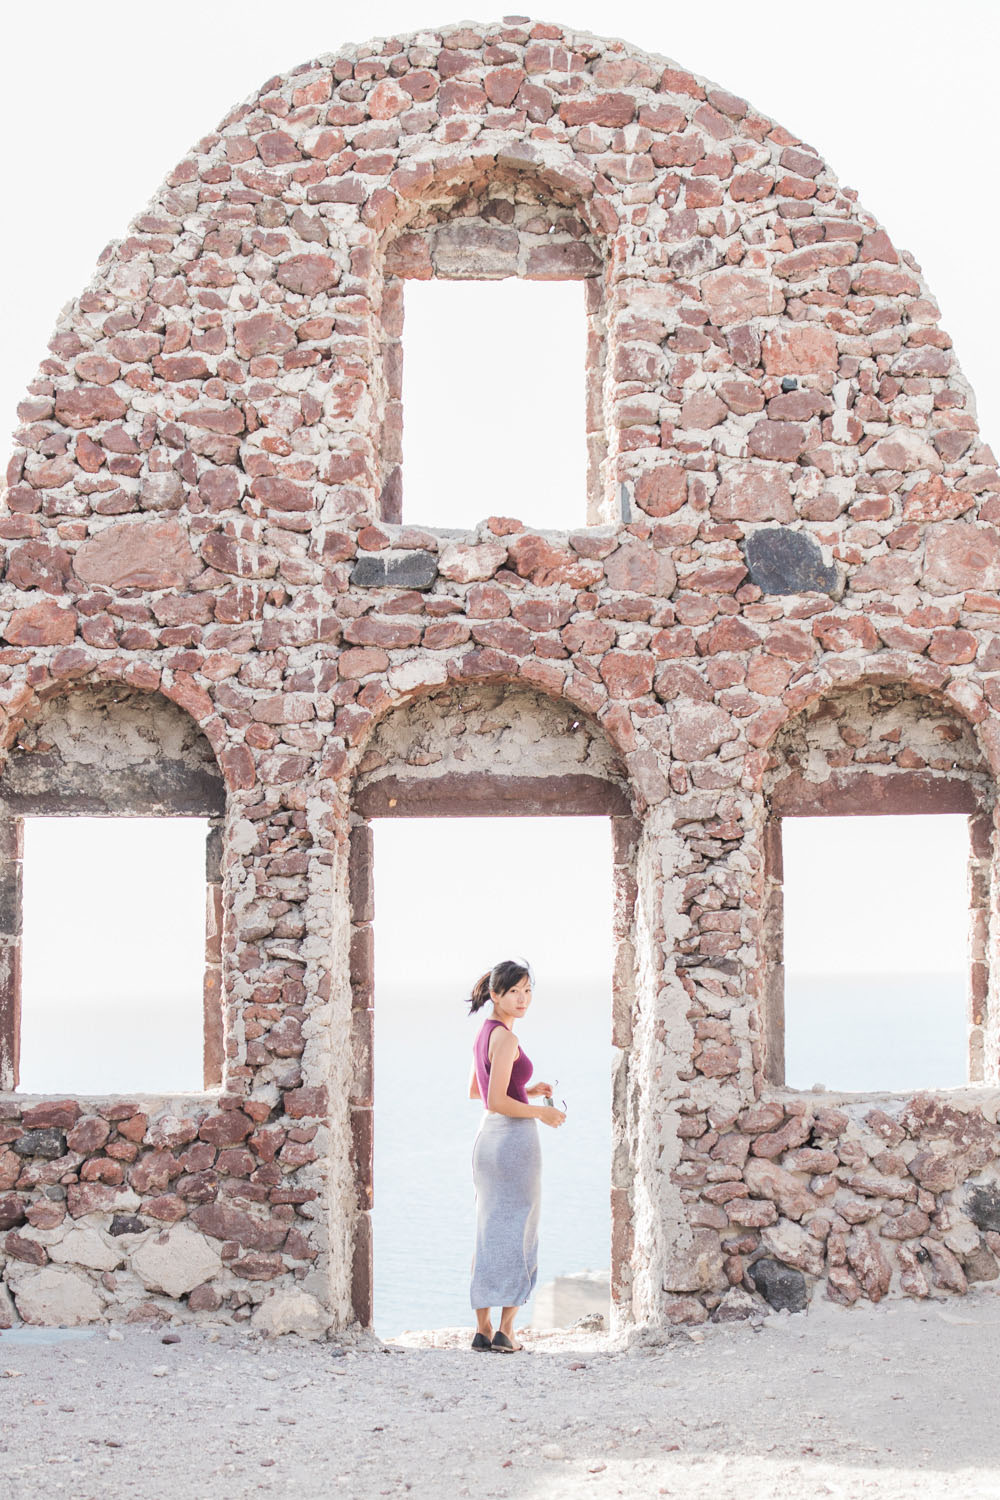 Anita_Greece_Santorini_Wedding_Photographer-Rhythm_Photography-02